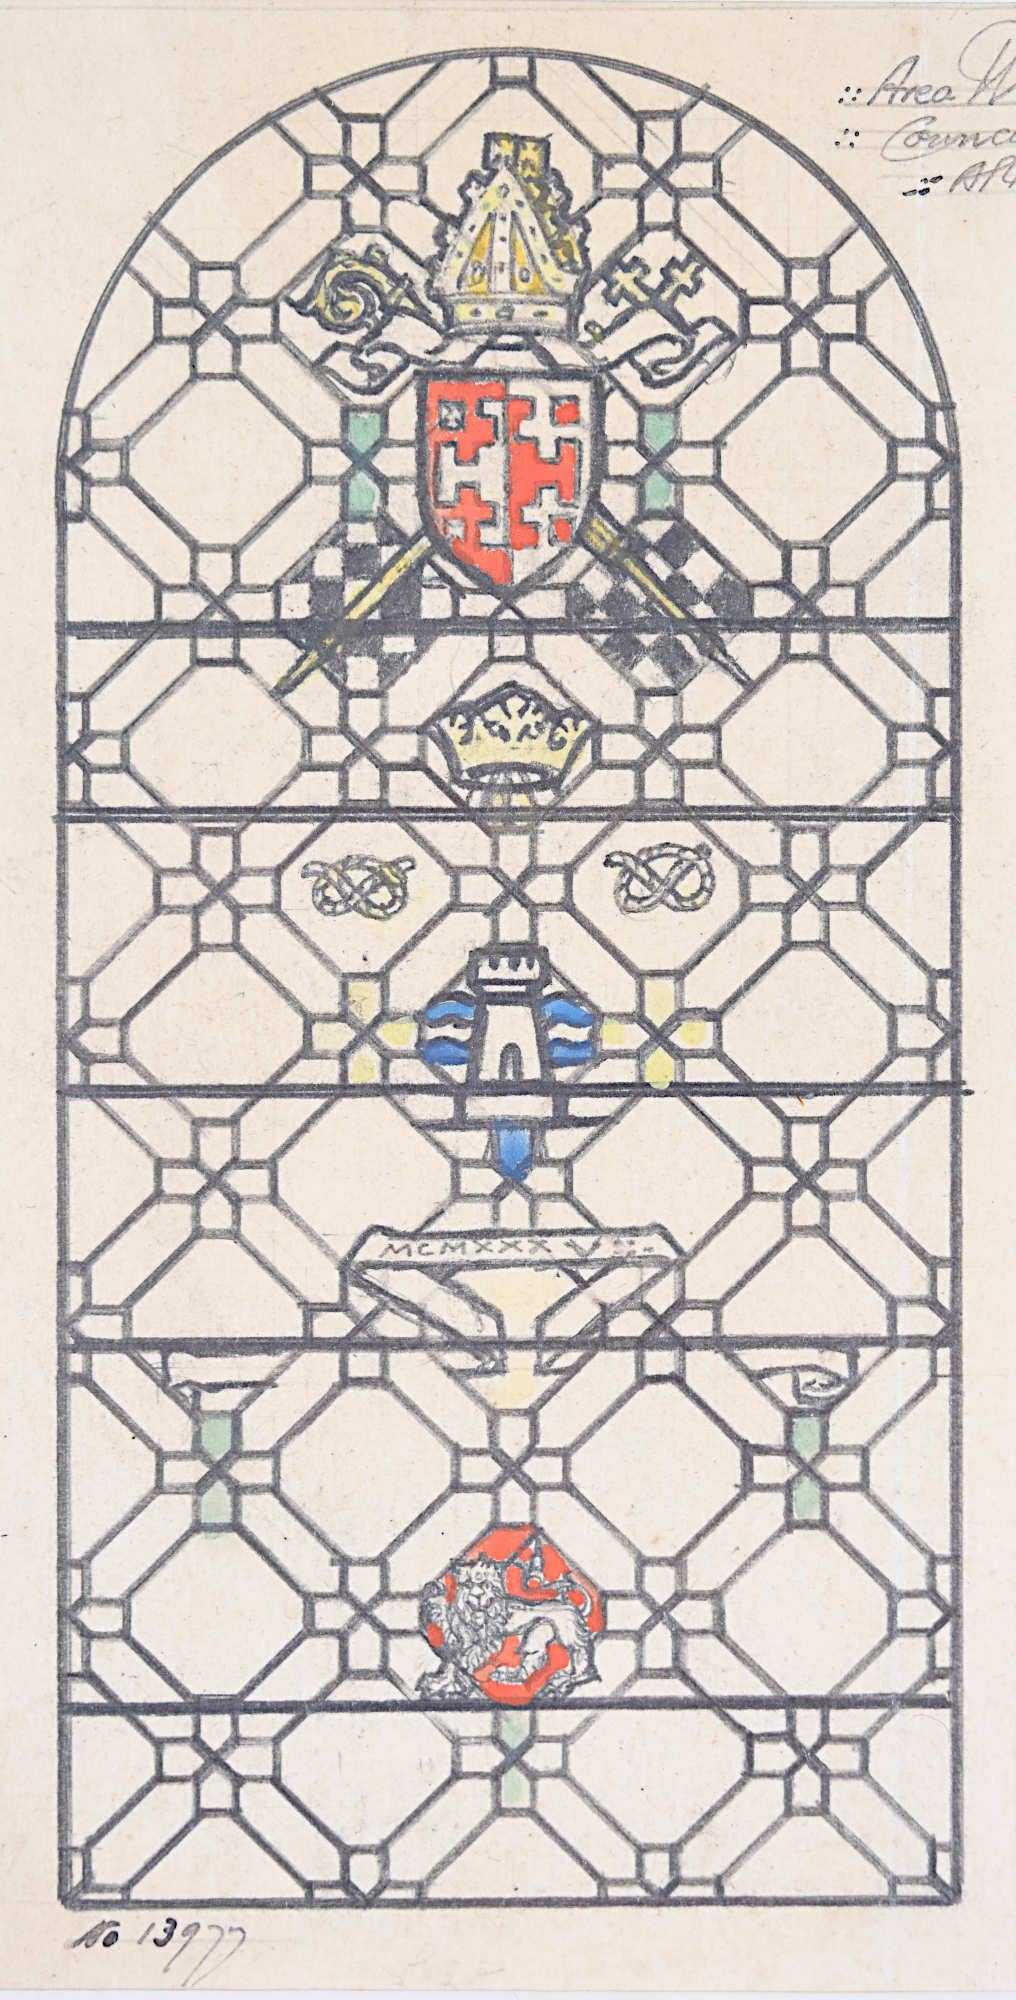 Stained Glass Window Design Council Chamber Florence Camm Arts & Crafts TW